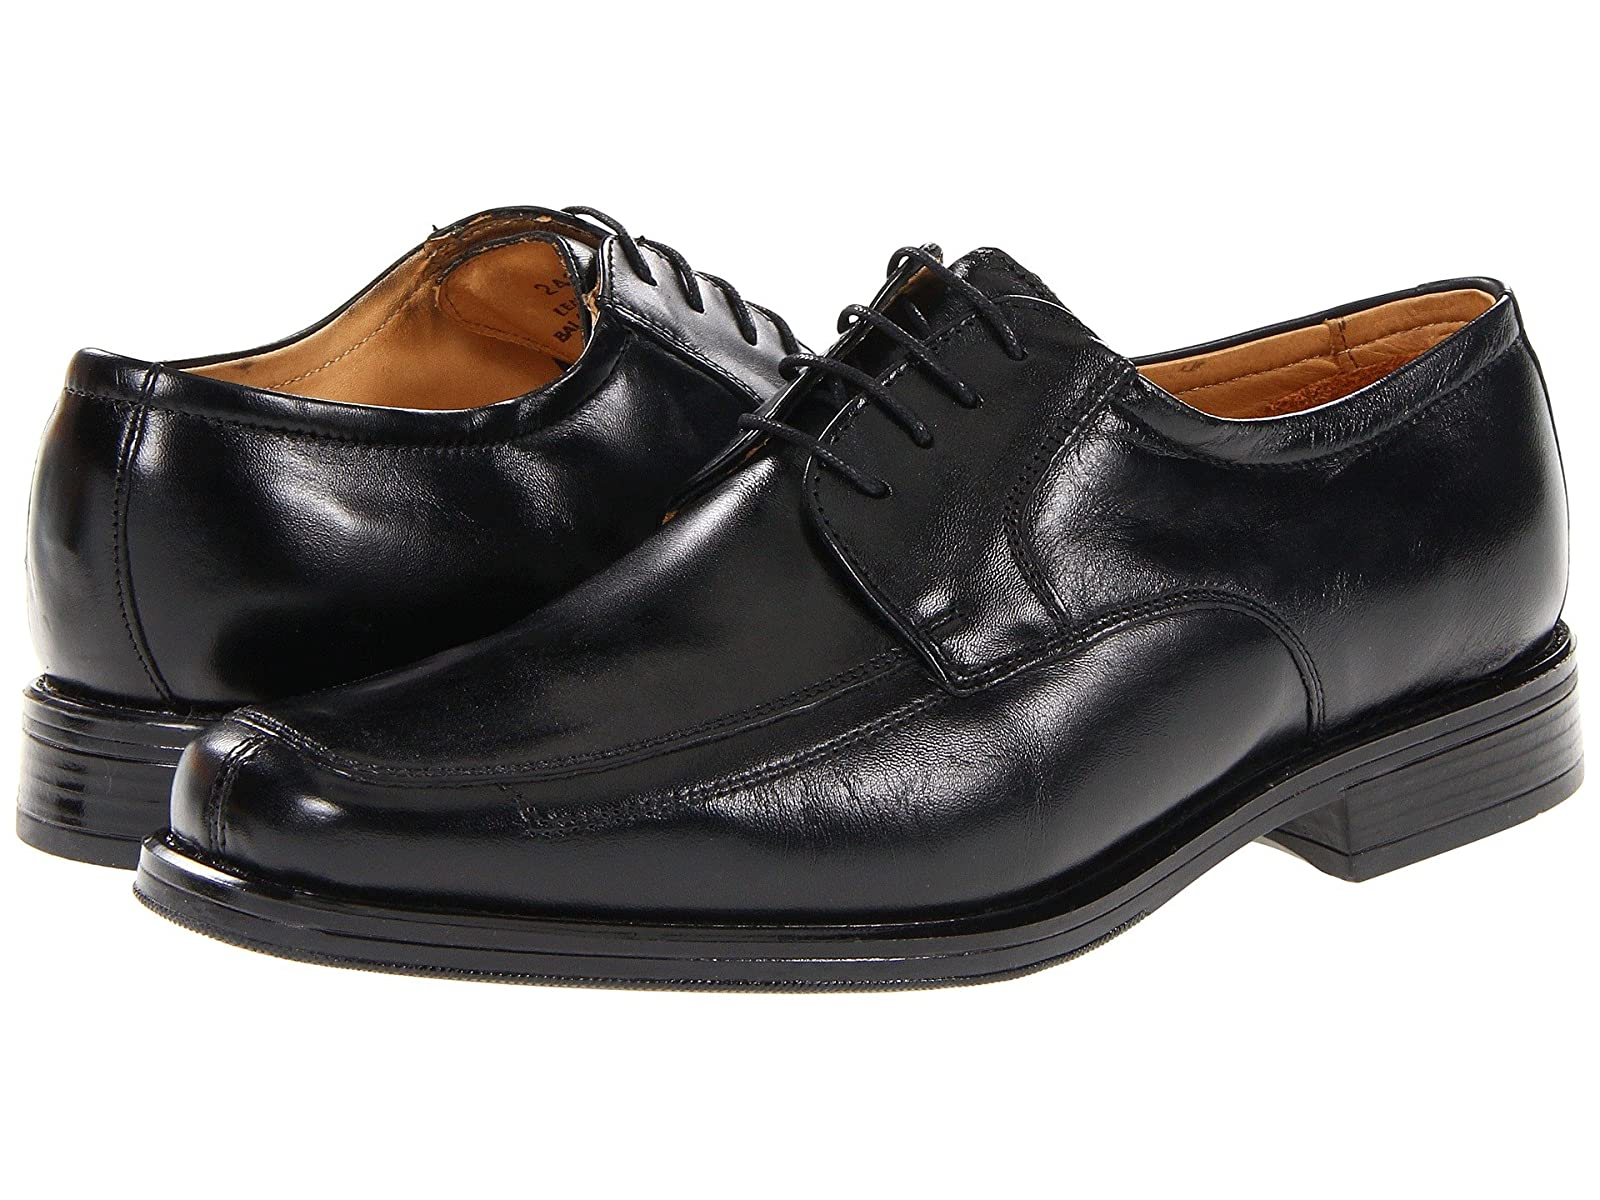 Giorgio Brutini DarcyAtmospheric grades have affordable shoes